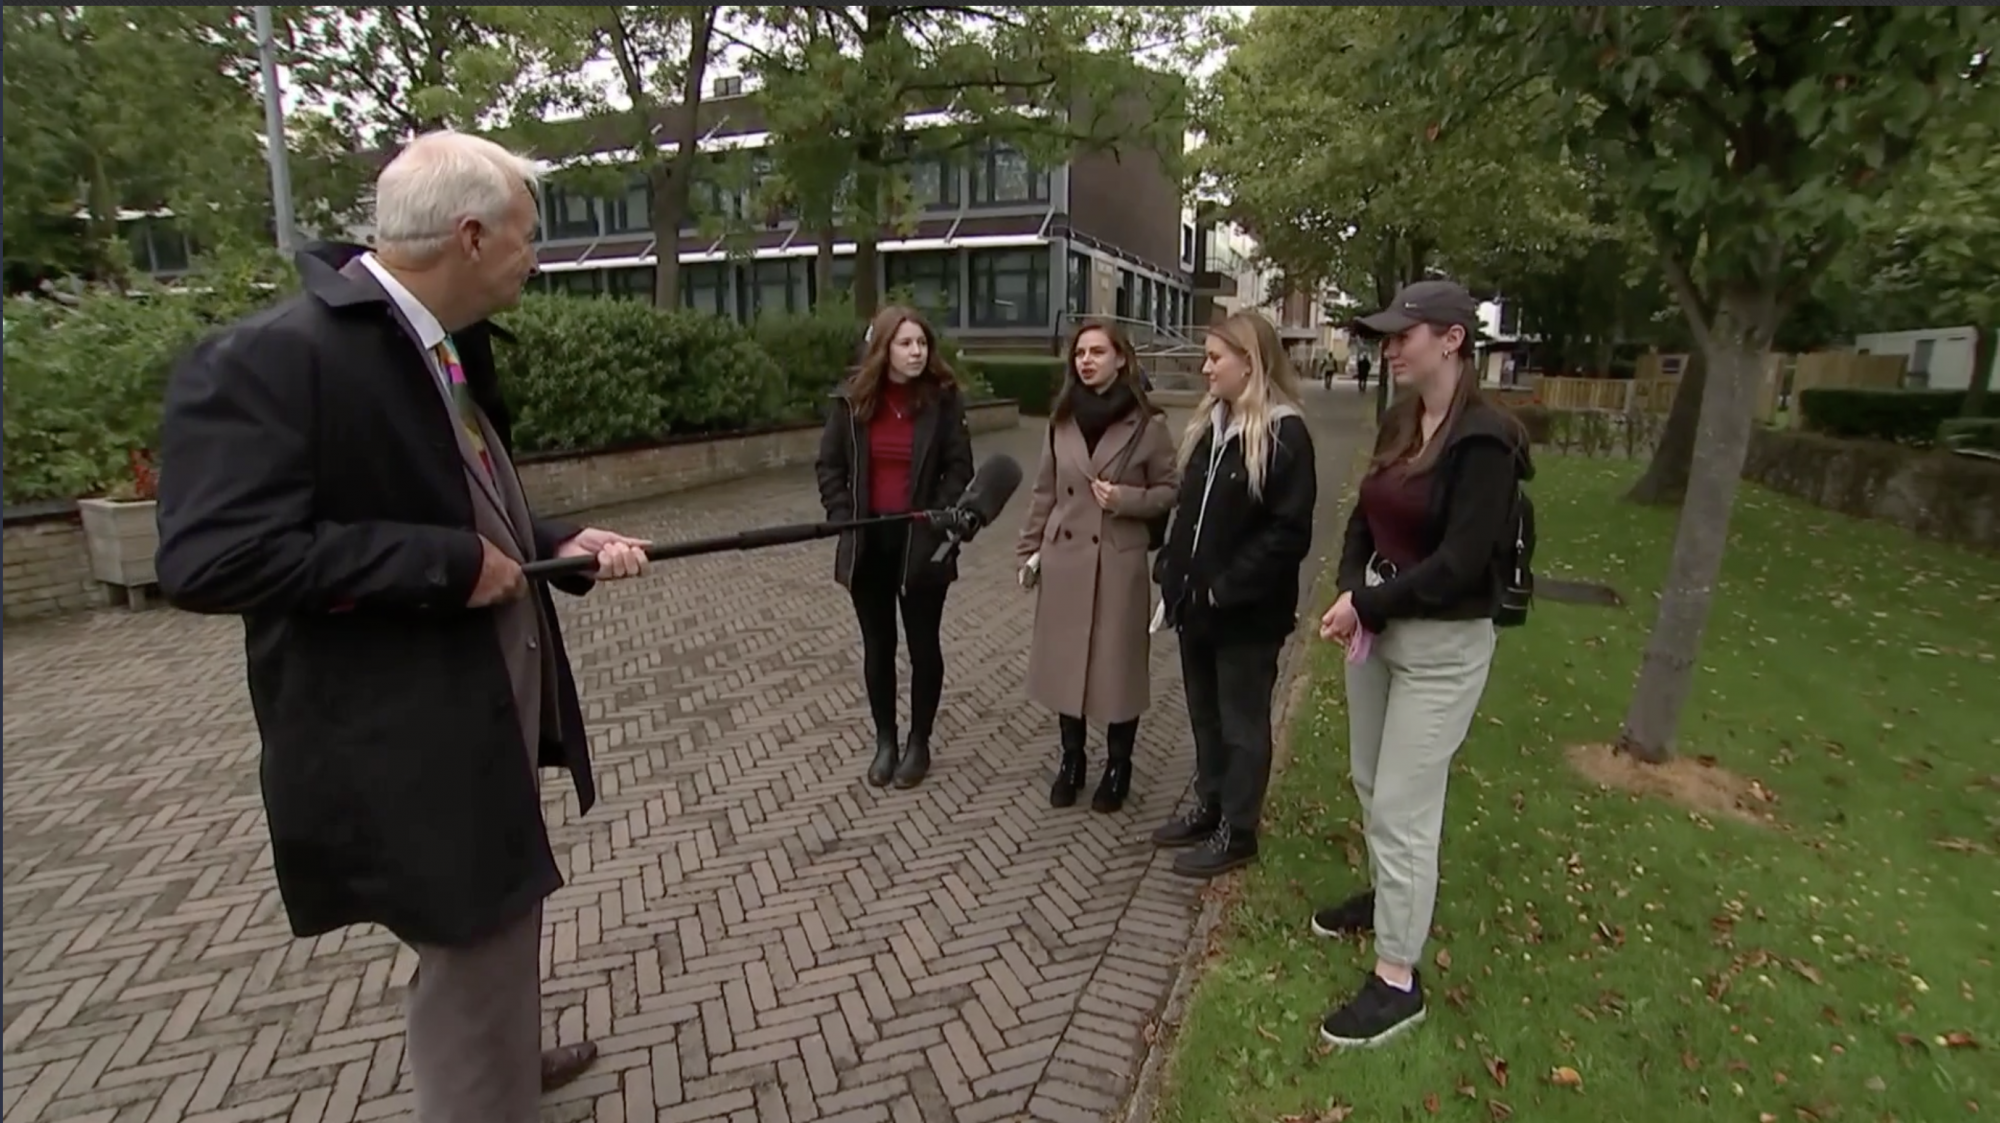 Jon Snow goes back to Liverpool University - channel 4